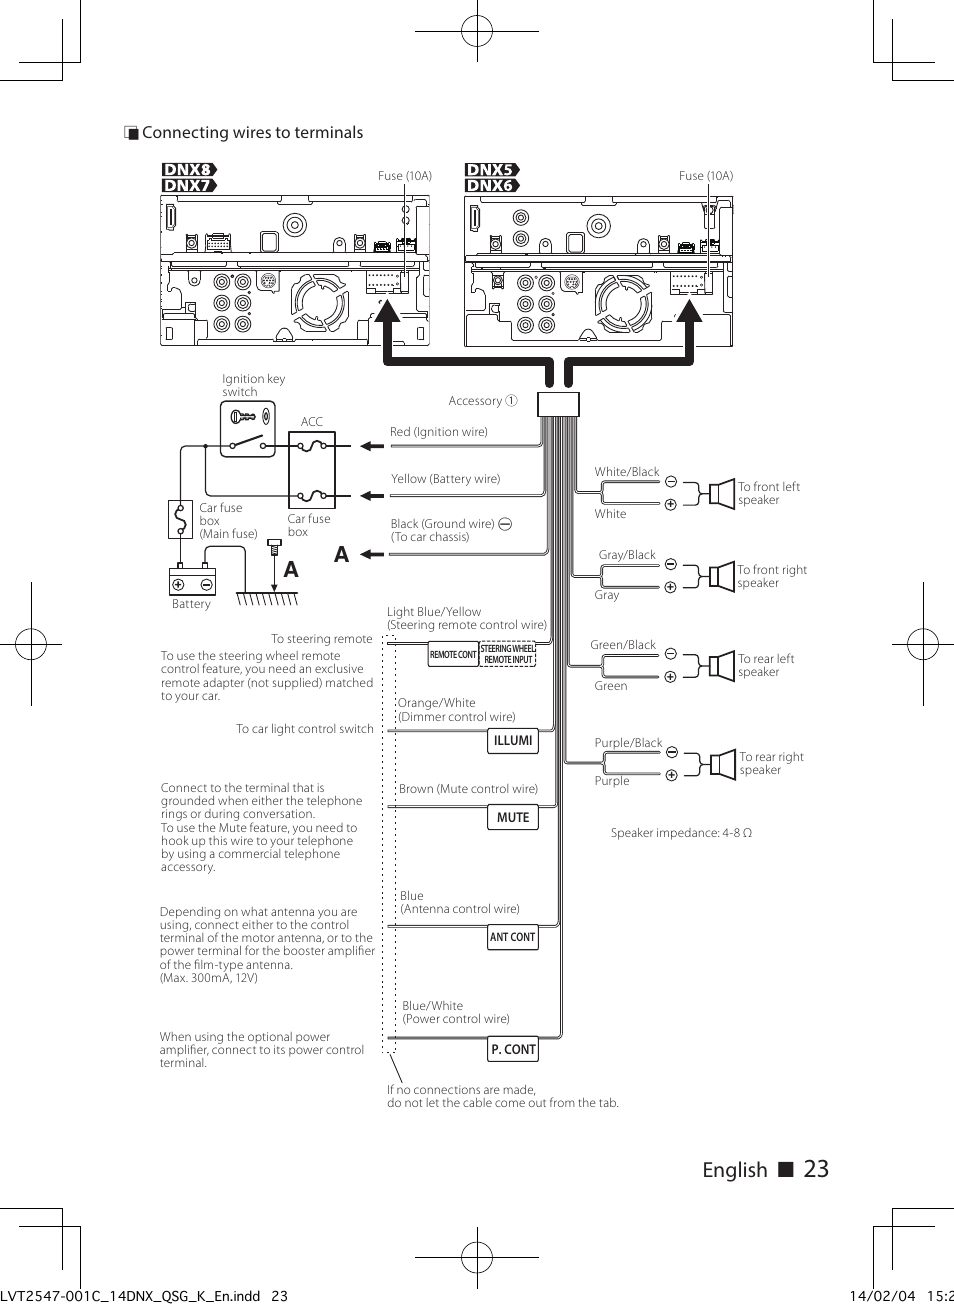 kenwood kdc 205 wiring diagram